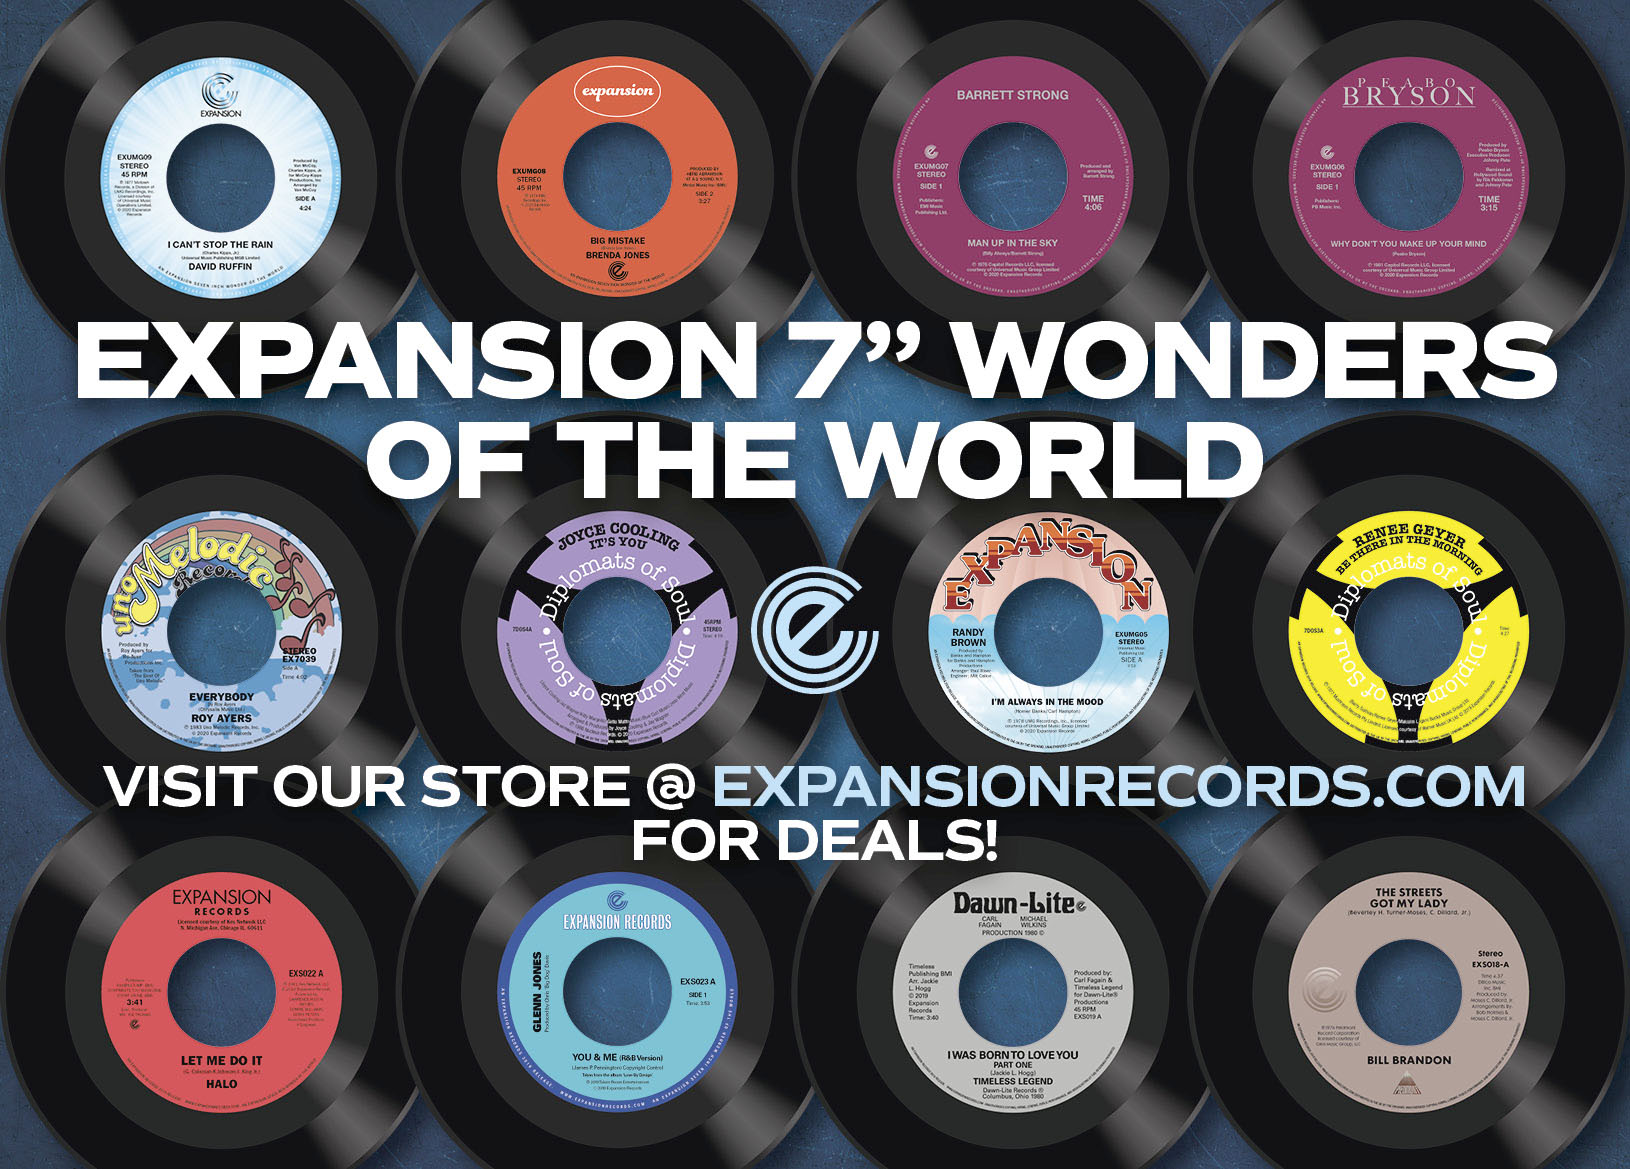 Expansion Records